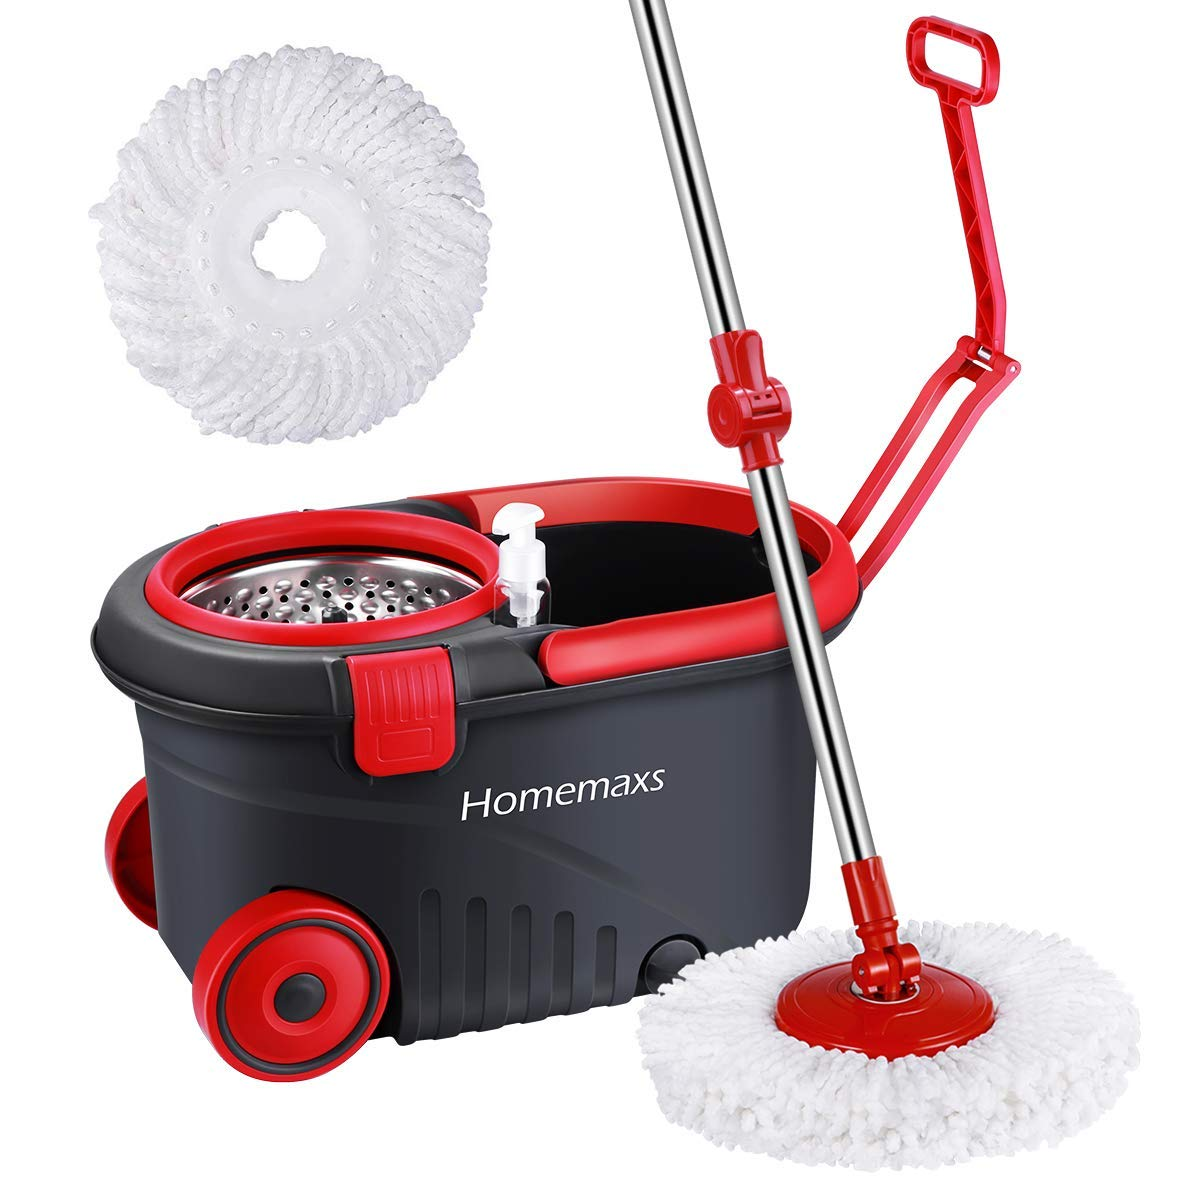 Homemaxs Newest 2019 Spin Press Mop Bucket, Spin Self-Wringing Mop and Bucket with Wheels - Extended Length Adjustable Mop with 2 Extra Microfiber Mop Heads - Black by Homemaxs (Image #1)